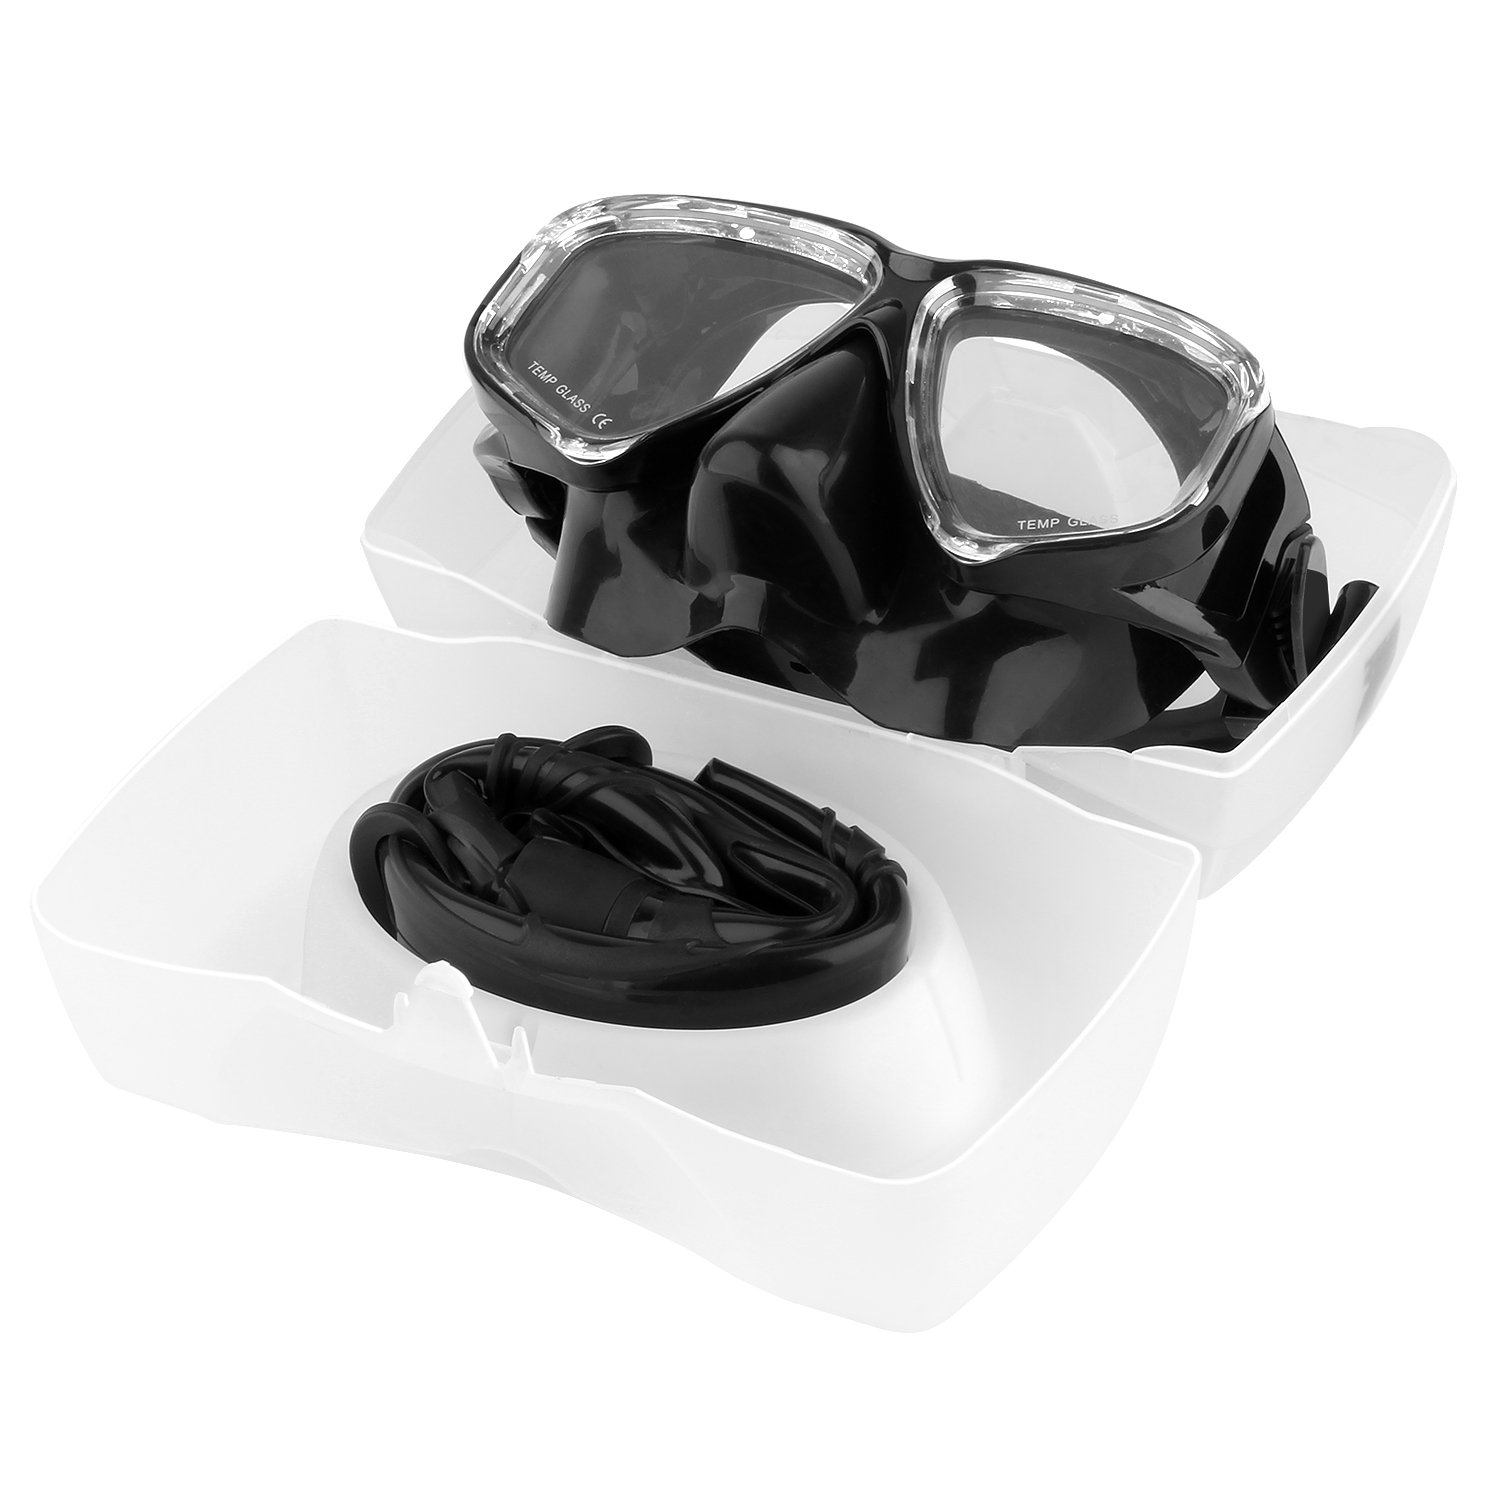 Pro Snorkeling Diving Mask with Anti-Fog Film Glass and Flexible Silicone Snorkel Tube for Adult NOCKNOCK Snorkel Set